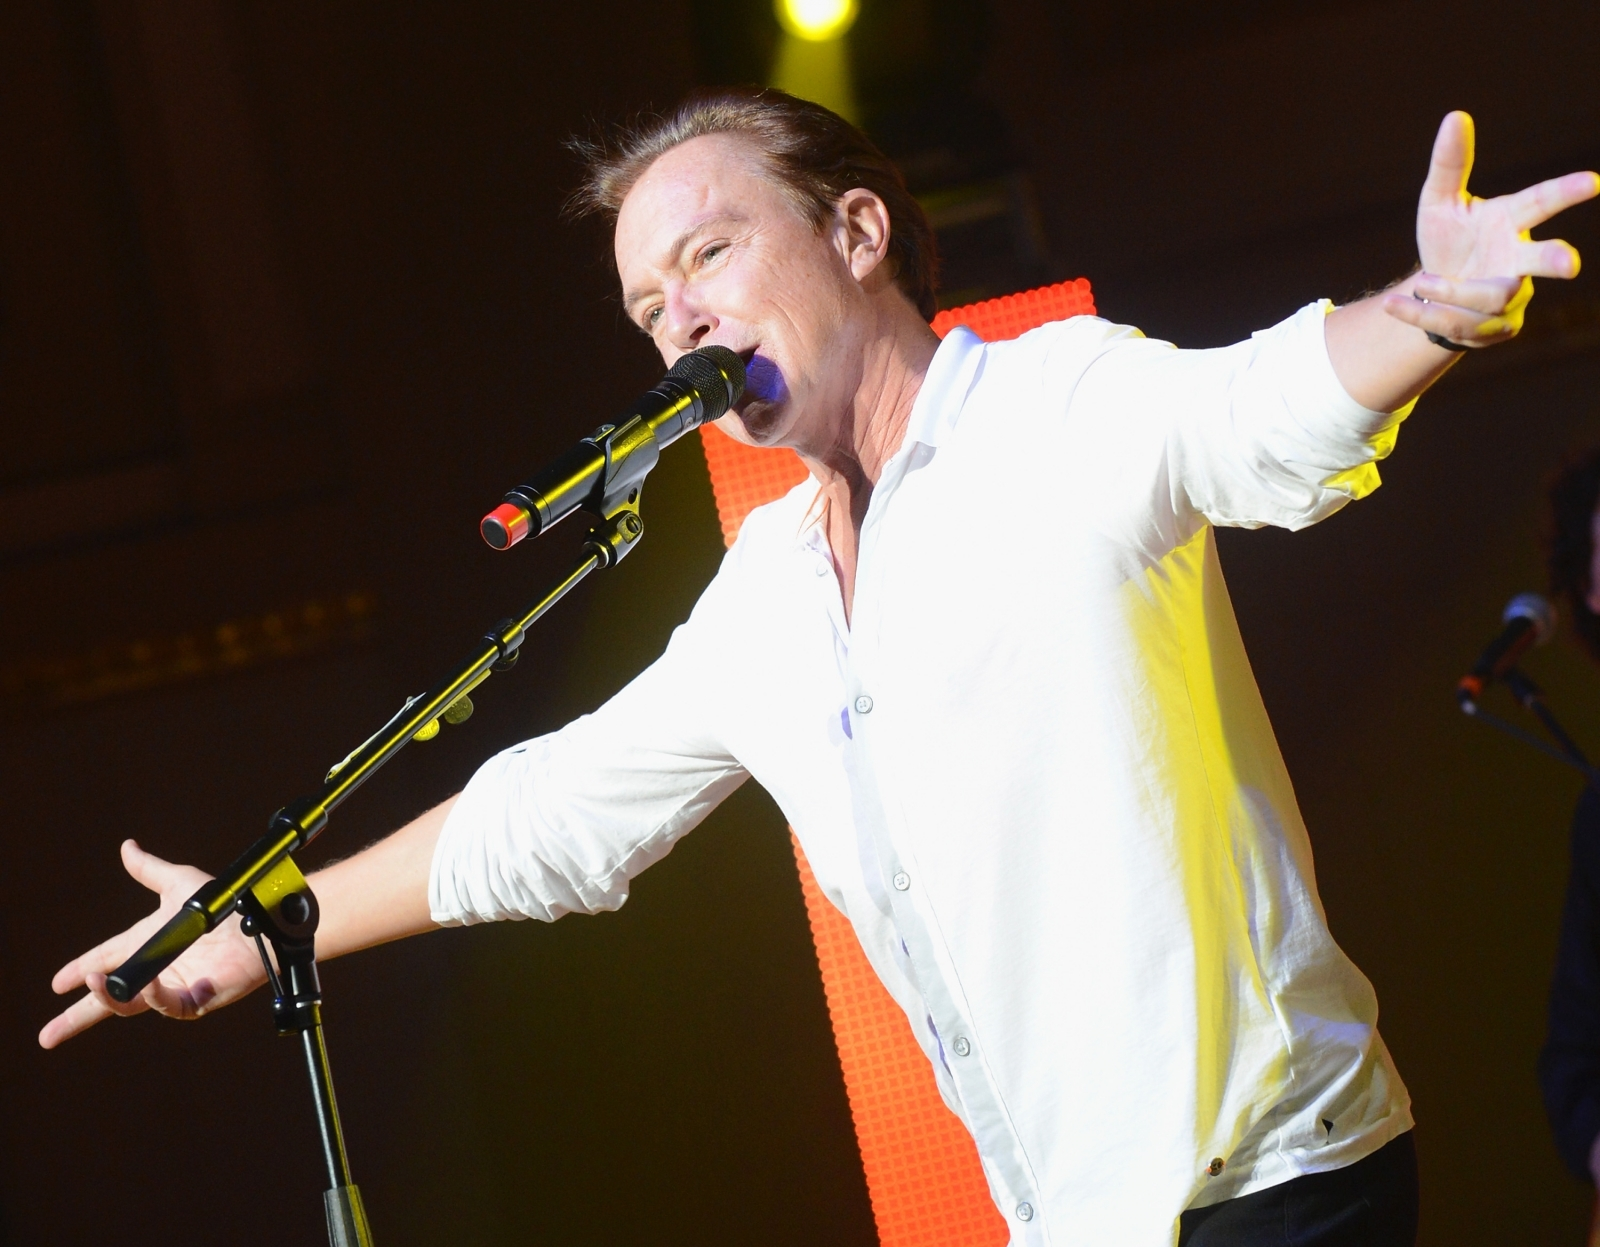 It's Reportedly 'Looking Grim' For David Cassidy's Health Battle